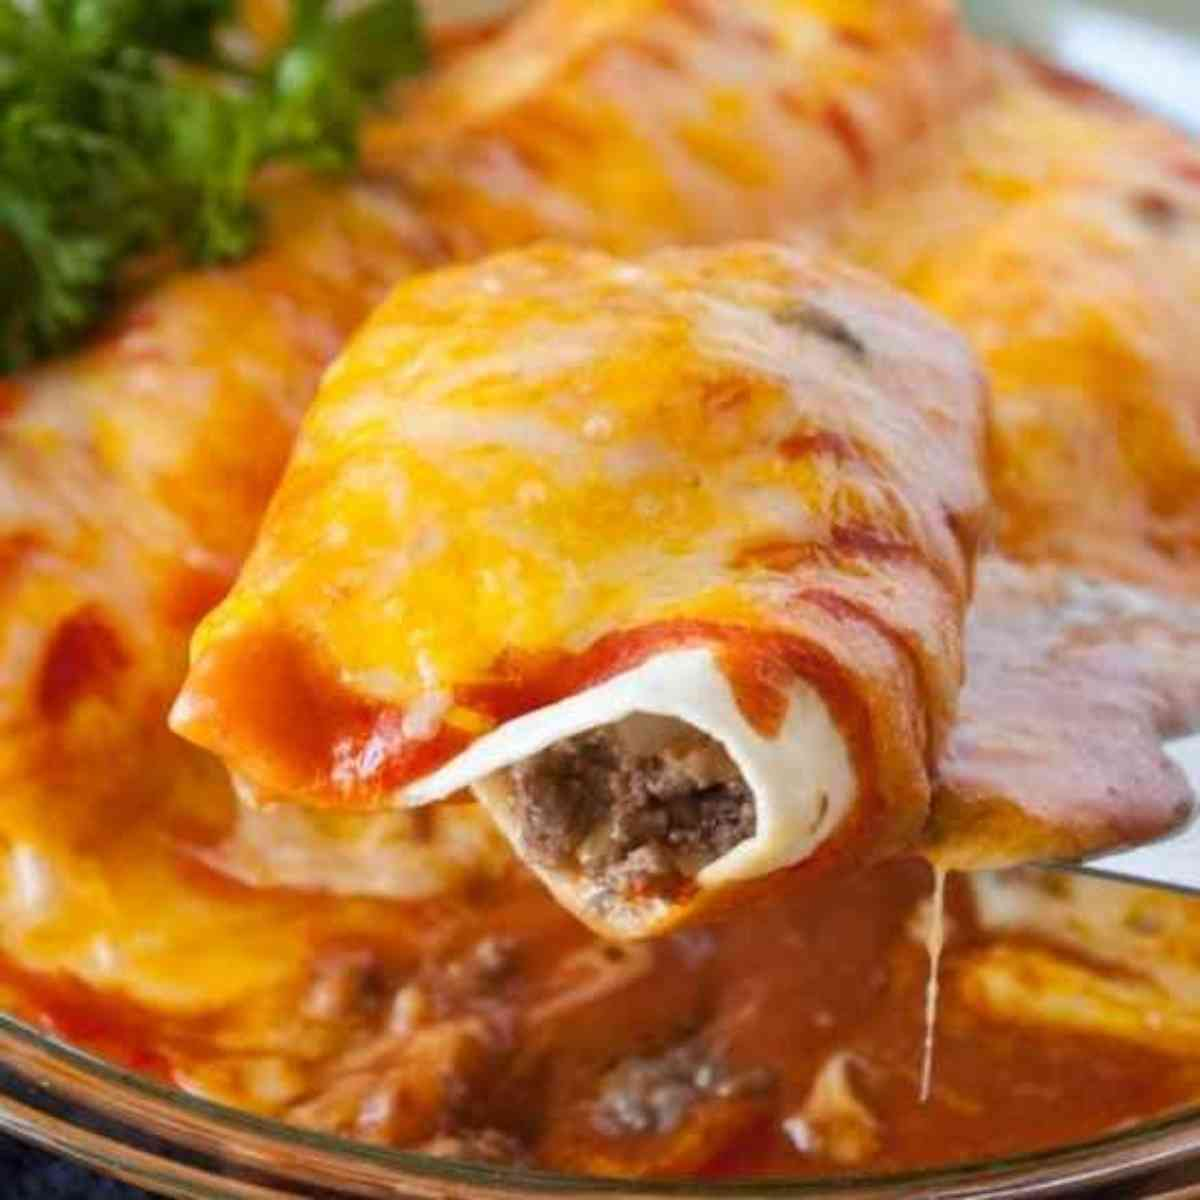 A fork lifting a bite of ground beef enchiladas.